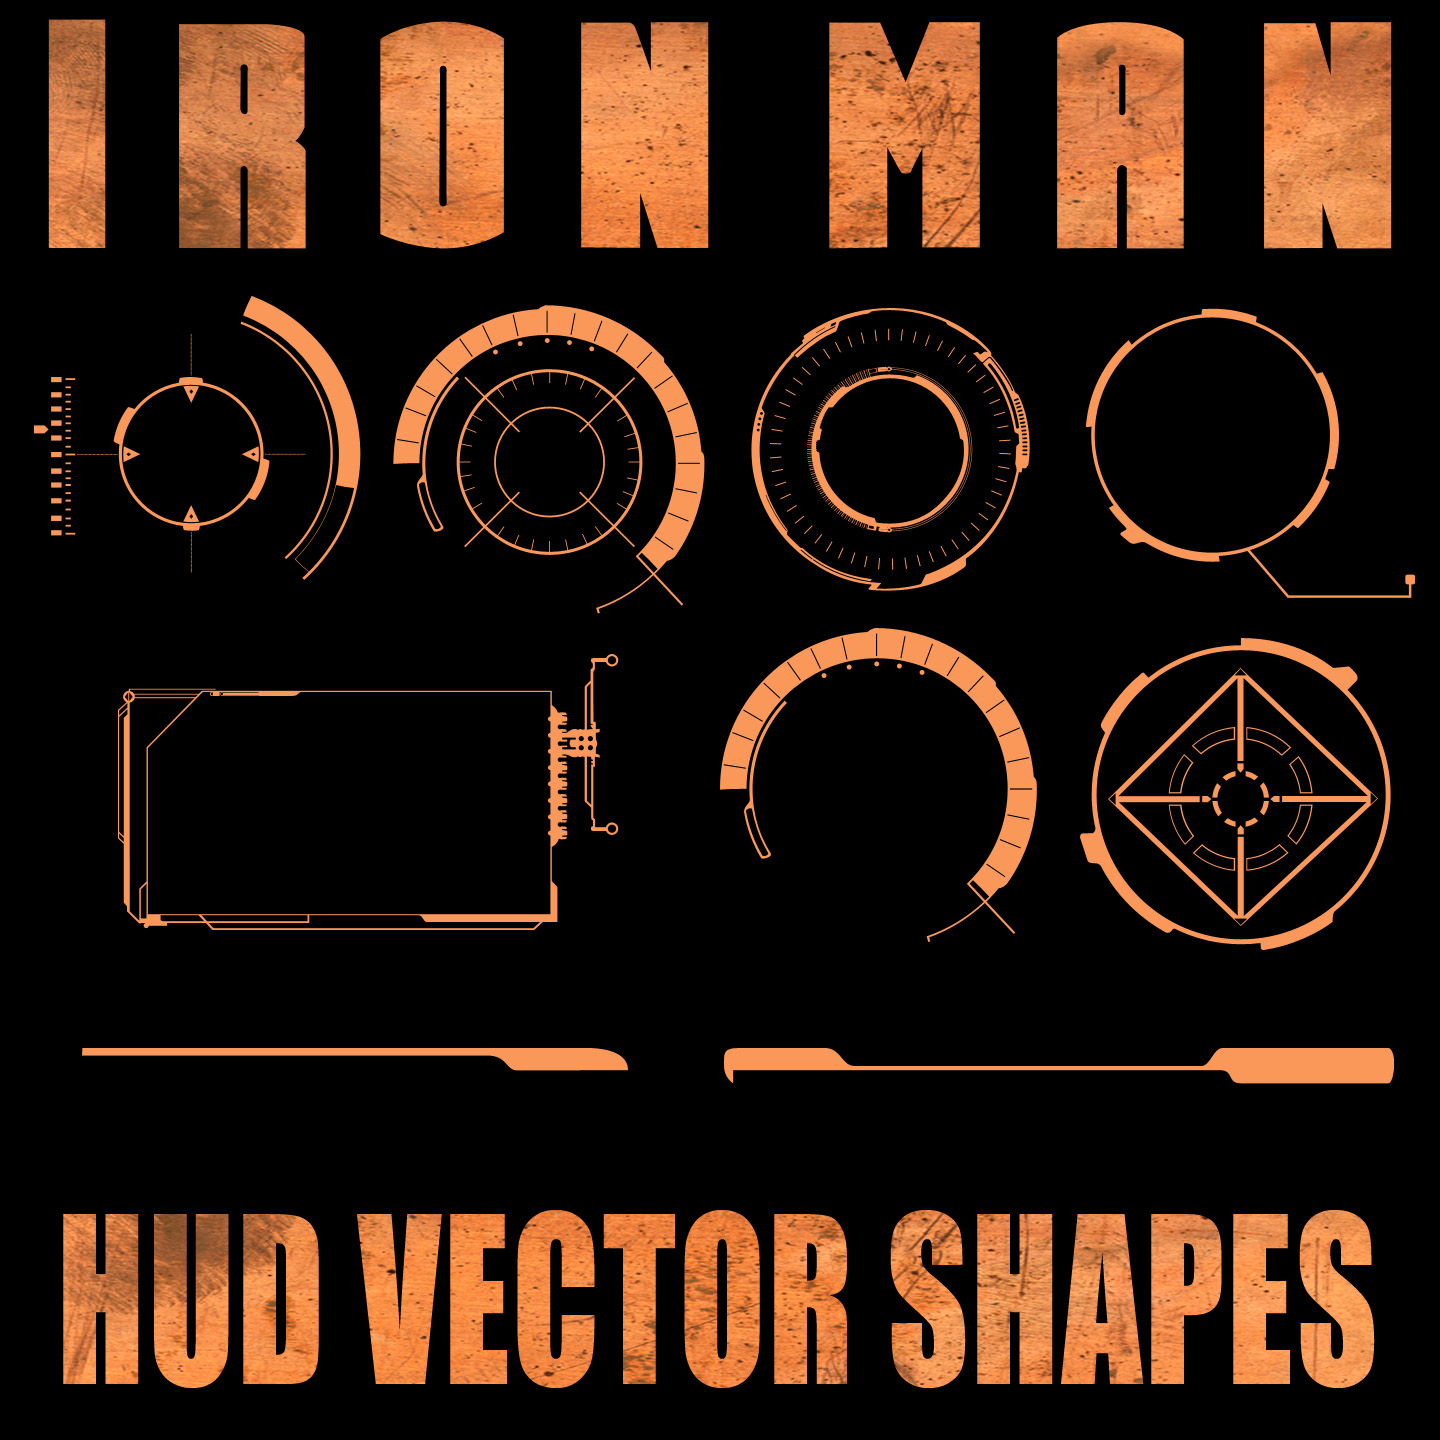 Ironman HUD Shapes for PSP by Retoucher0